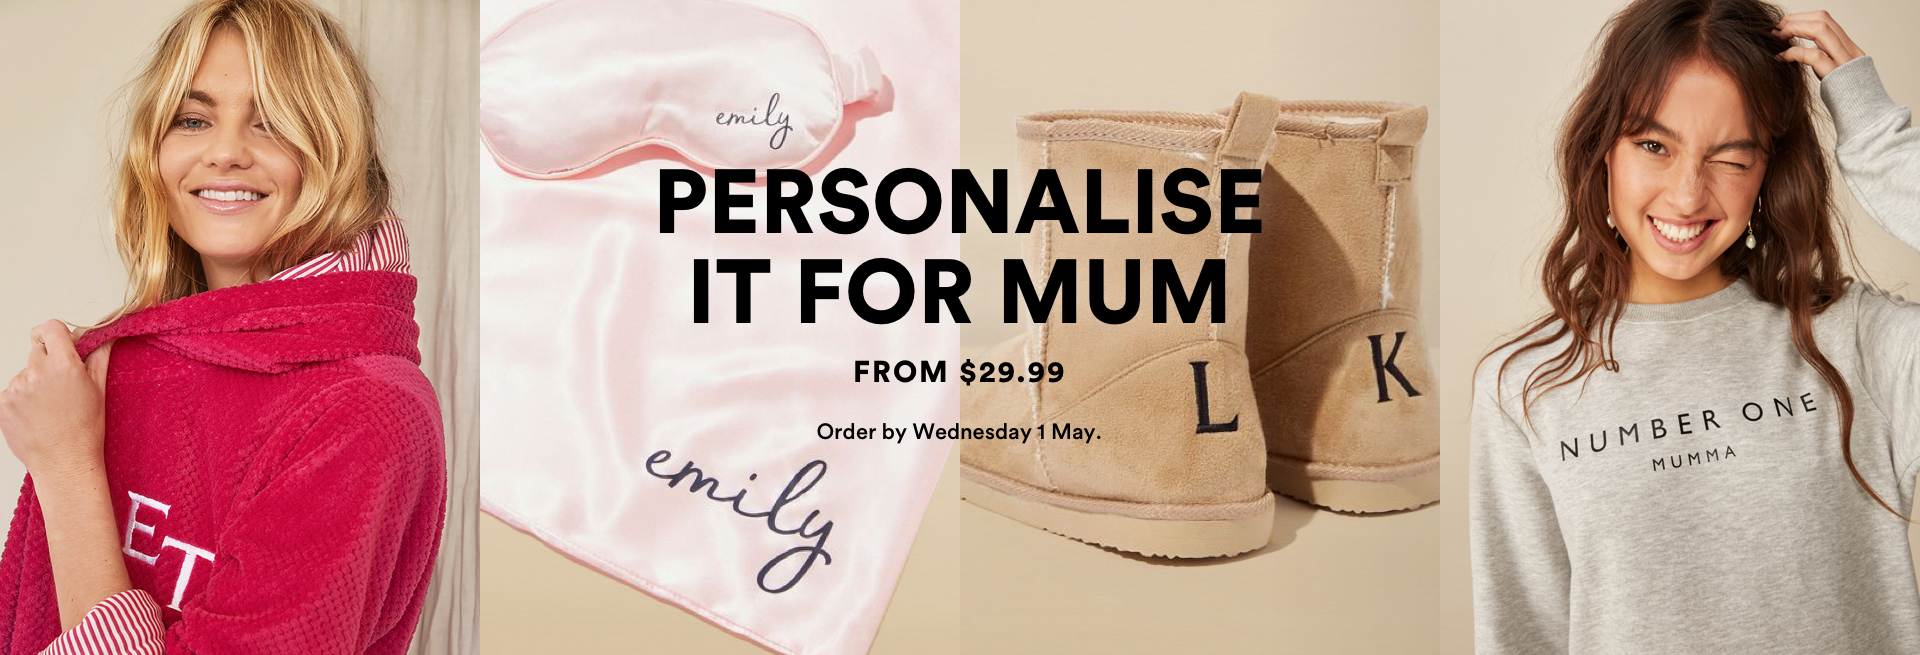 863aa8364653 Personalise It For Mum From  29.99. Order By Wednesday 1 May. Click to shop